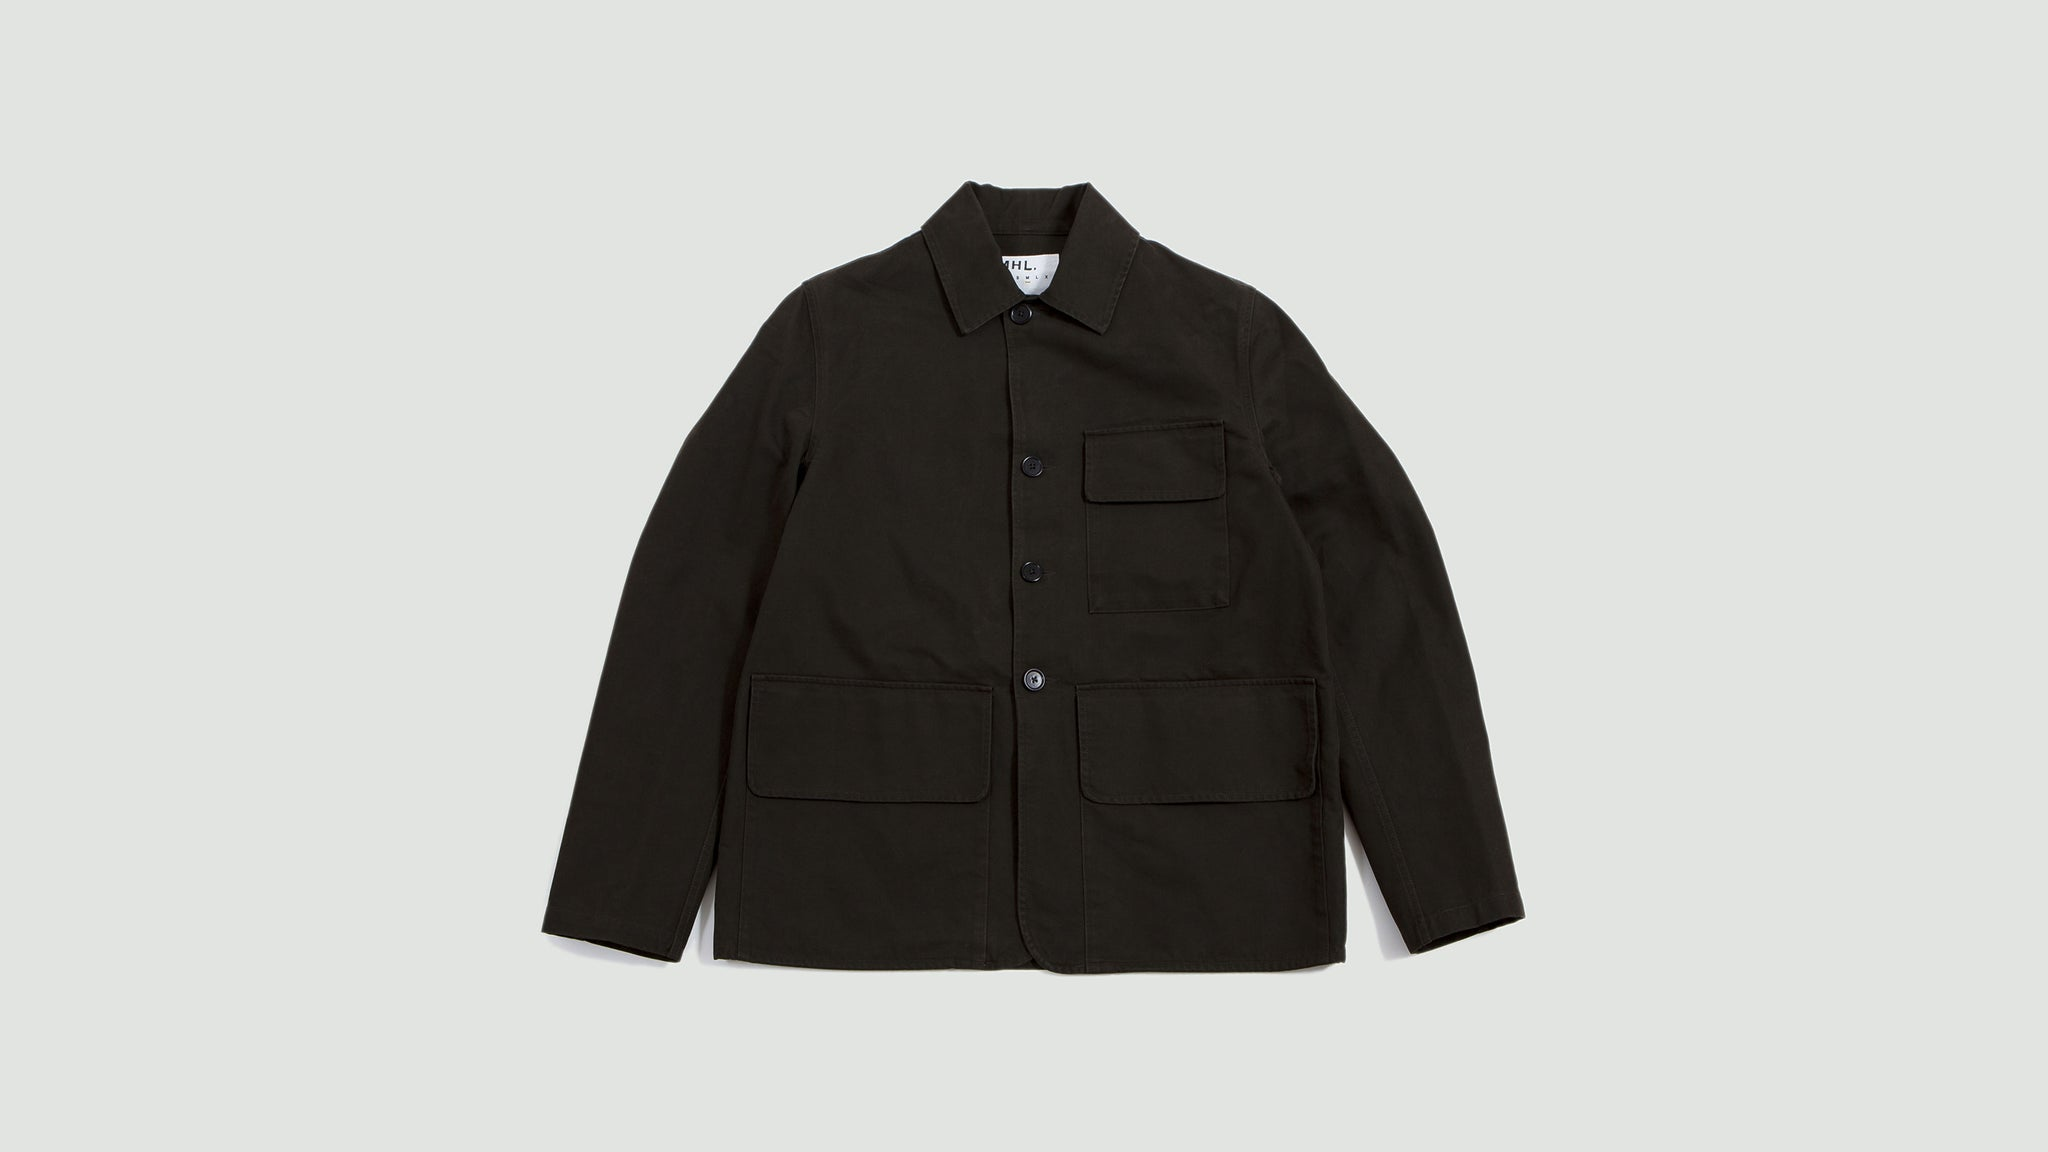 Hunting Jacket Dense Cotton Drill Dark Olive